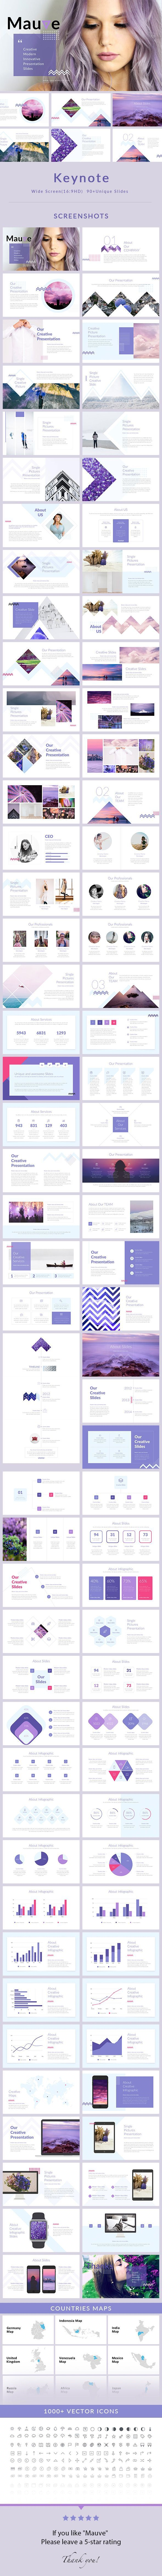 Mauve主题演讲模板 - 主题演讲KEY #minimal•下载➝https://graphicriver.net/item/mauve-keynote-presentation-template/19934842?ref=pxcr